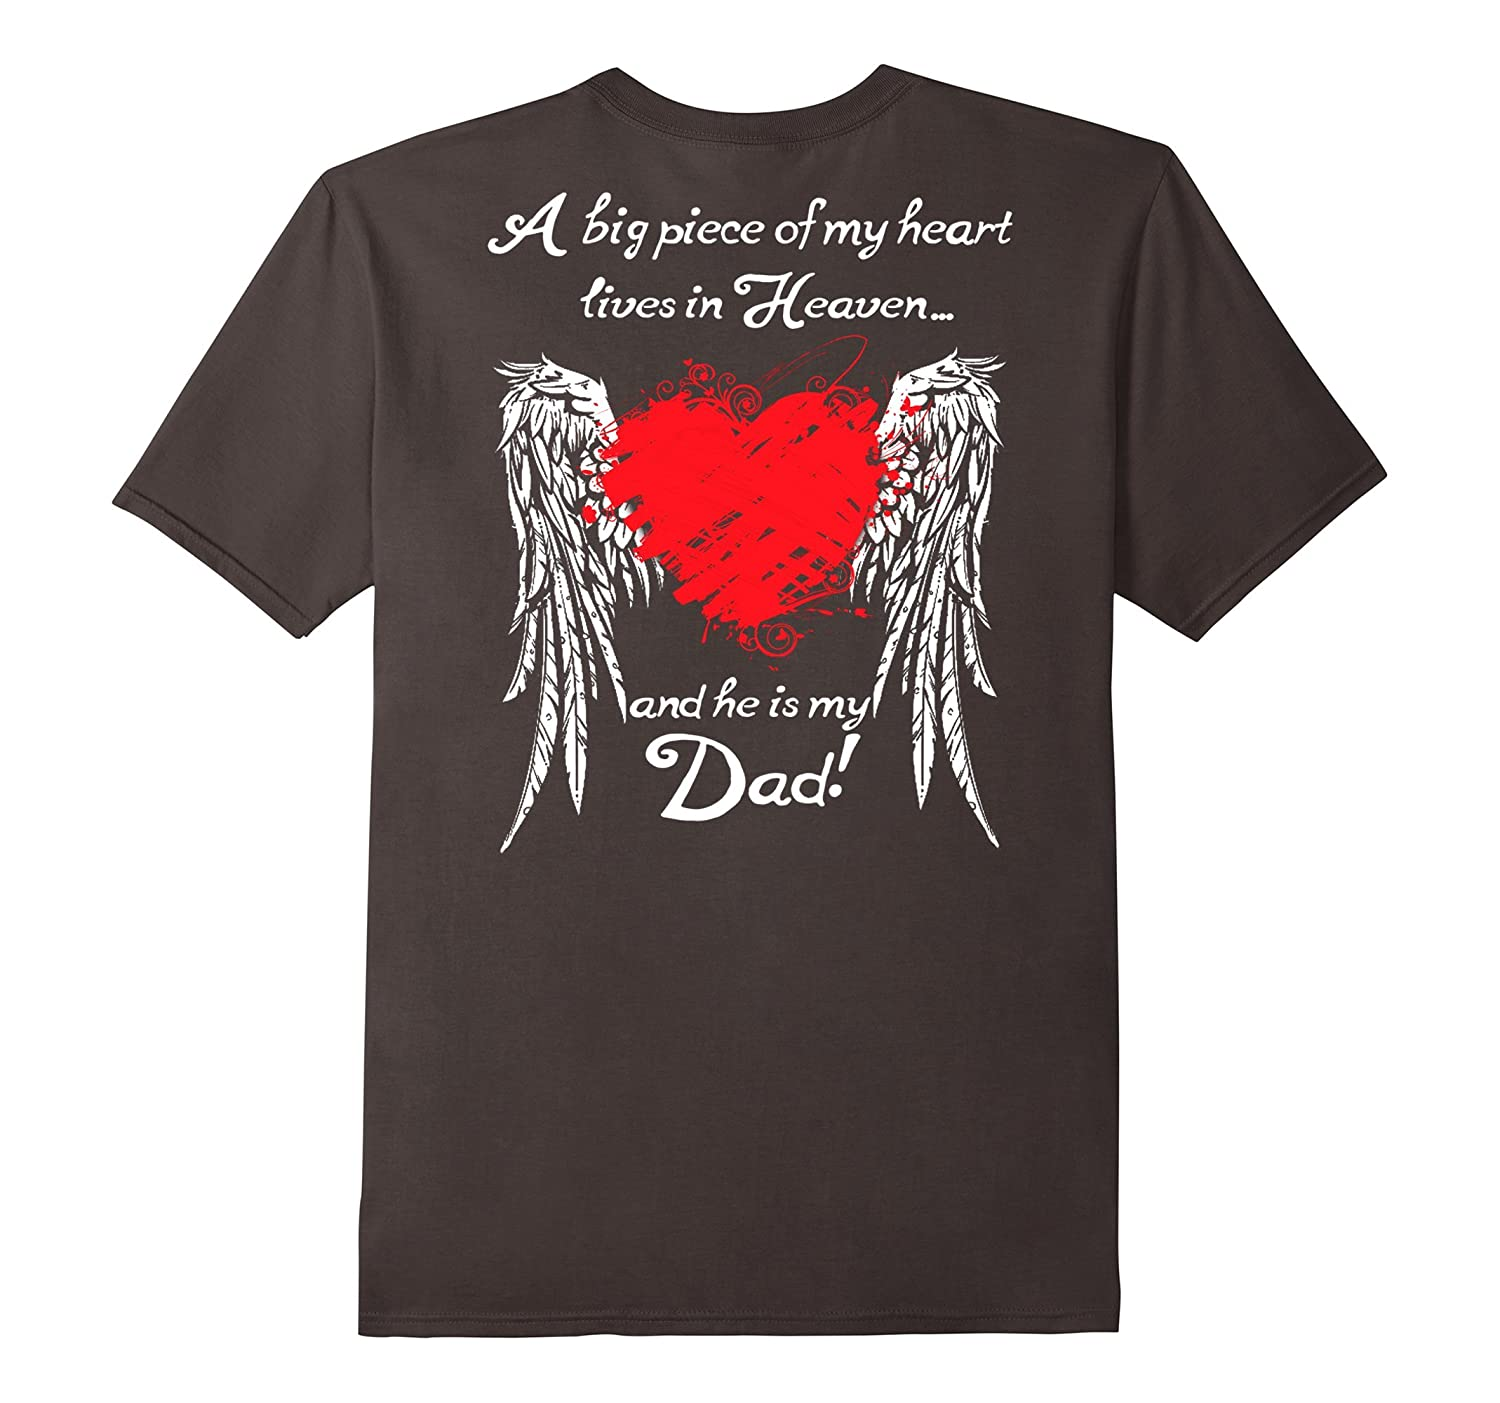 A Big Piece Of My Heart Lives In Heaven T-Shirt